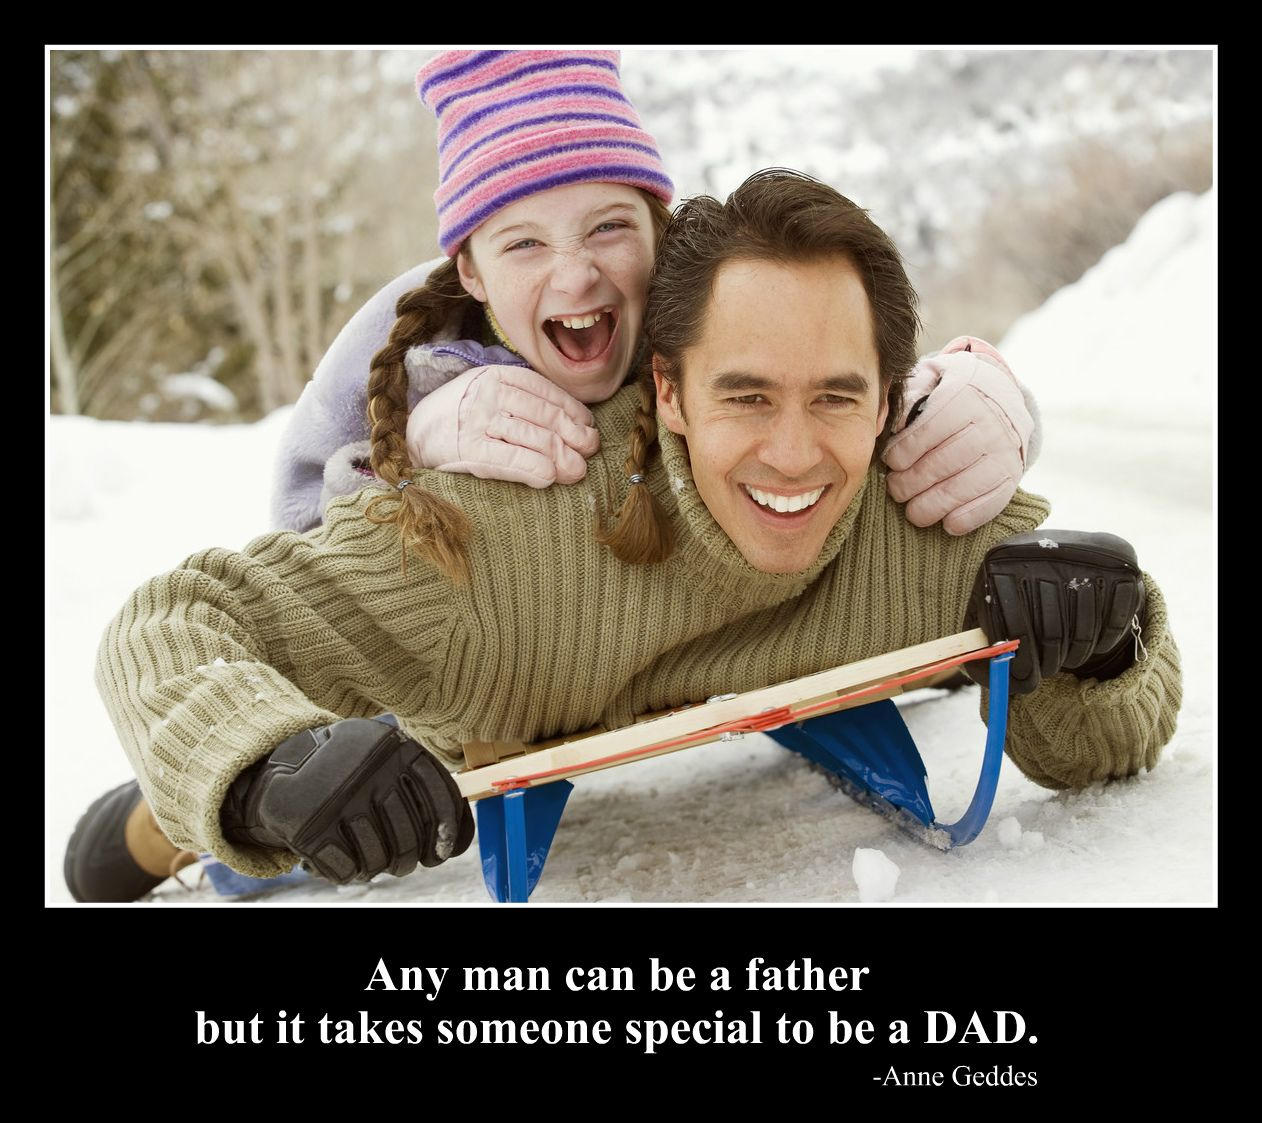 Dad And Daughter Quotes Wallpapers: Father's Day Quotes From Daughter To Dad